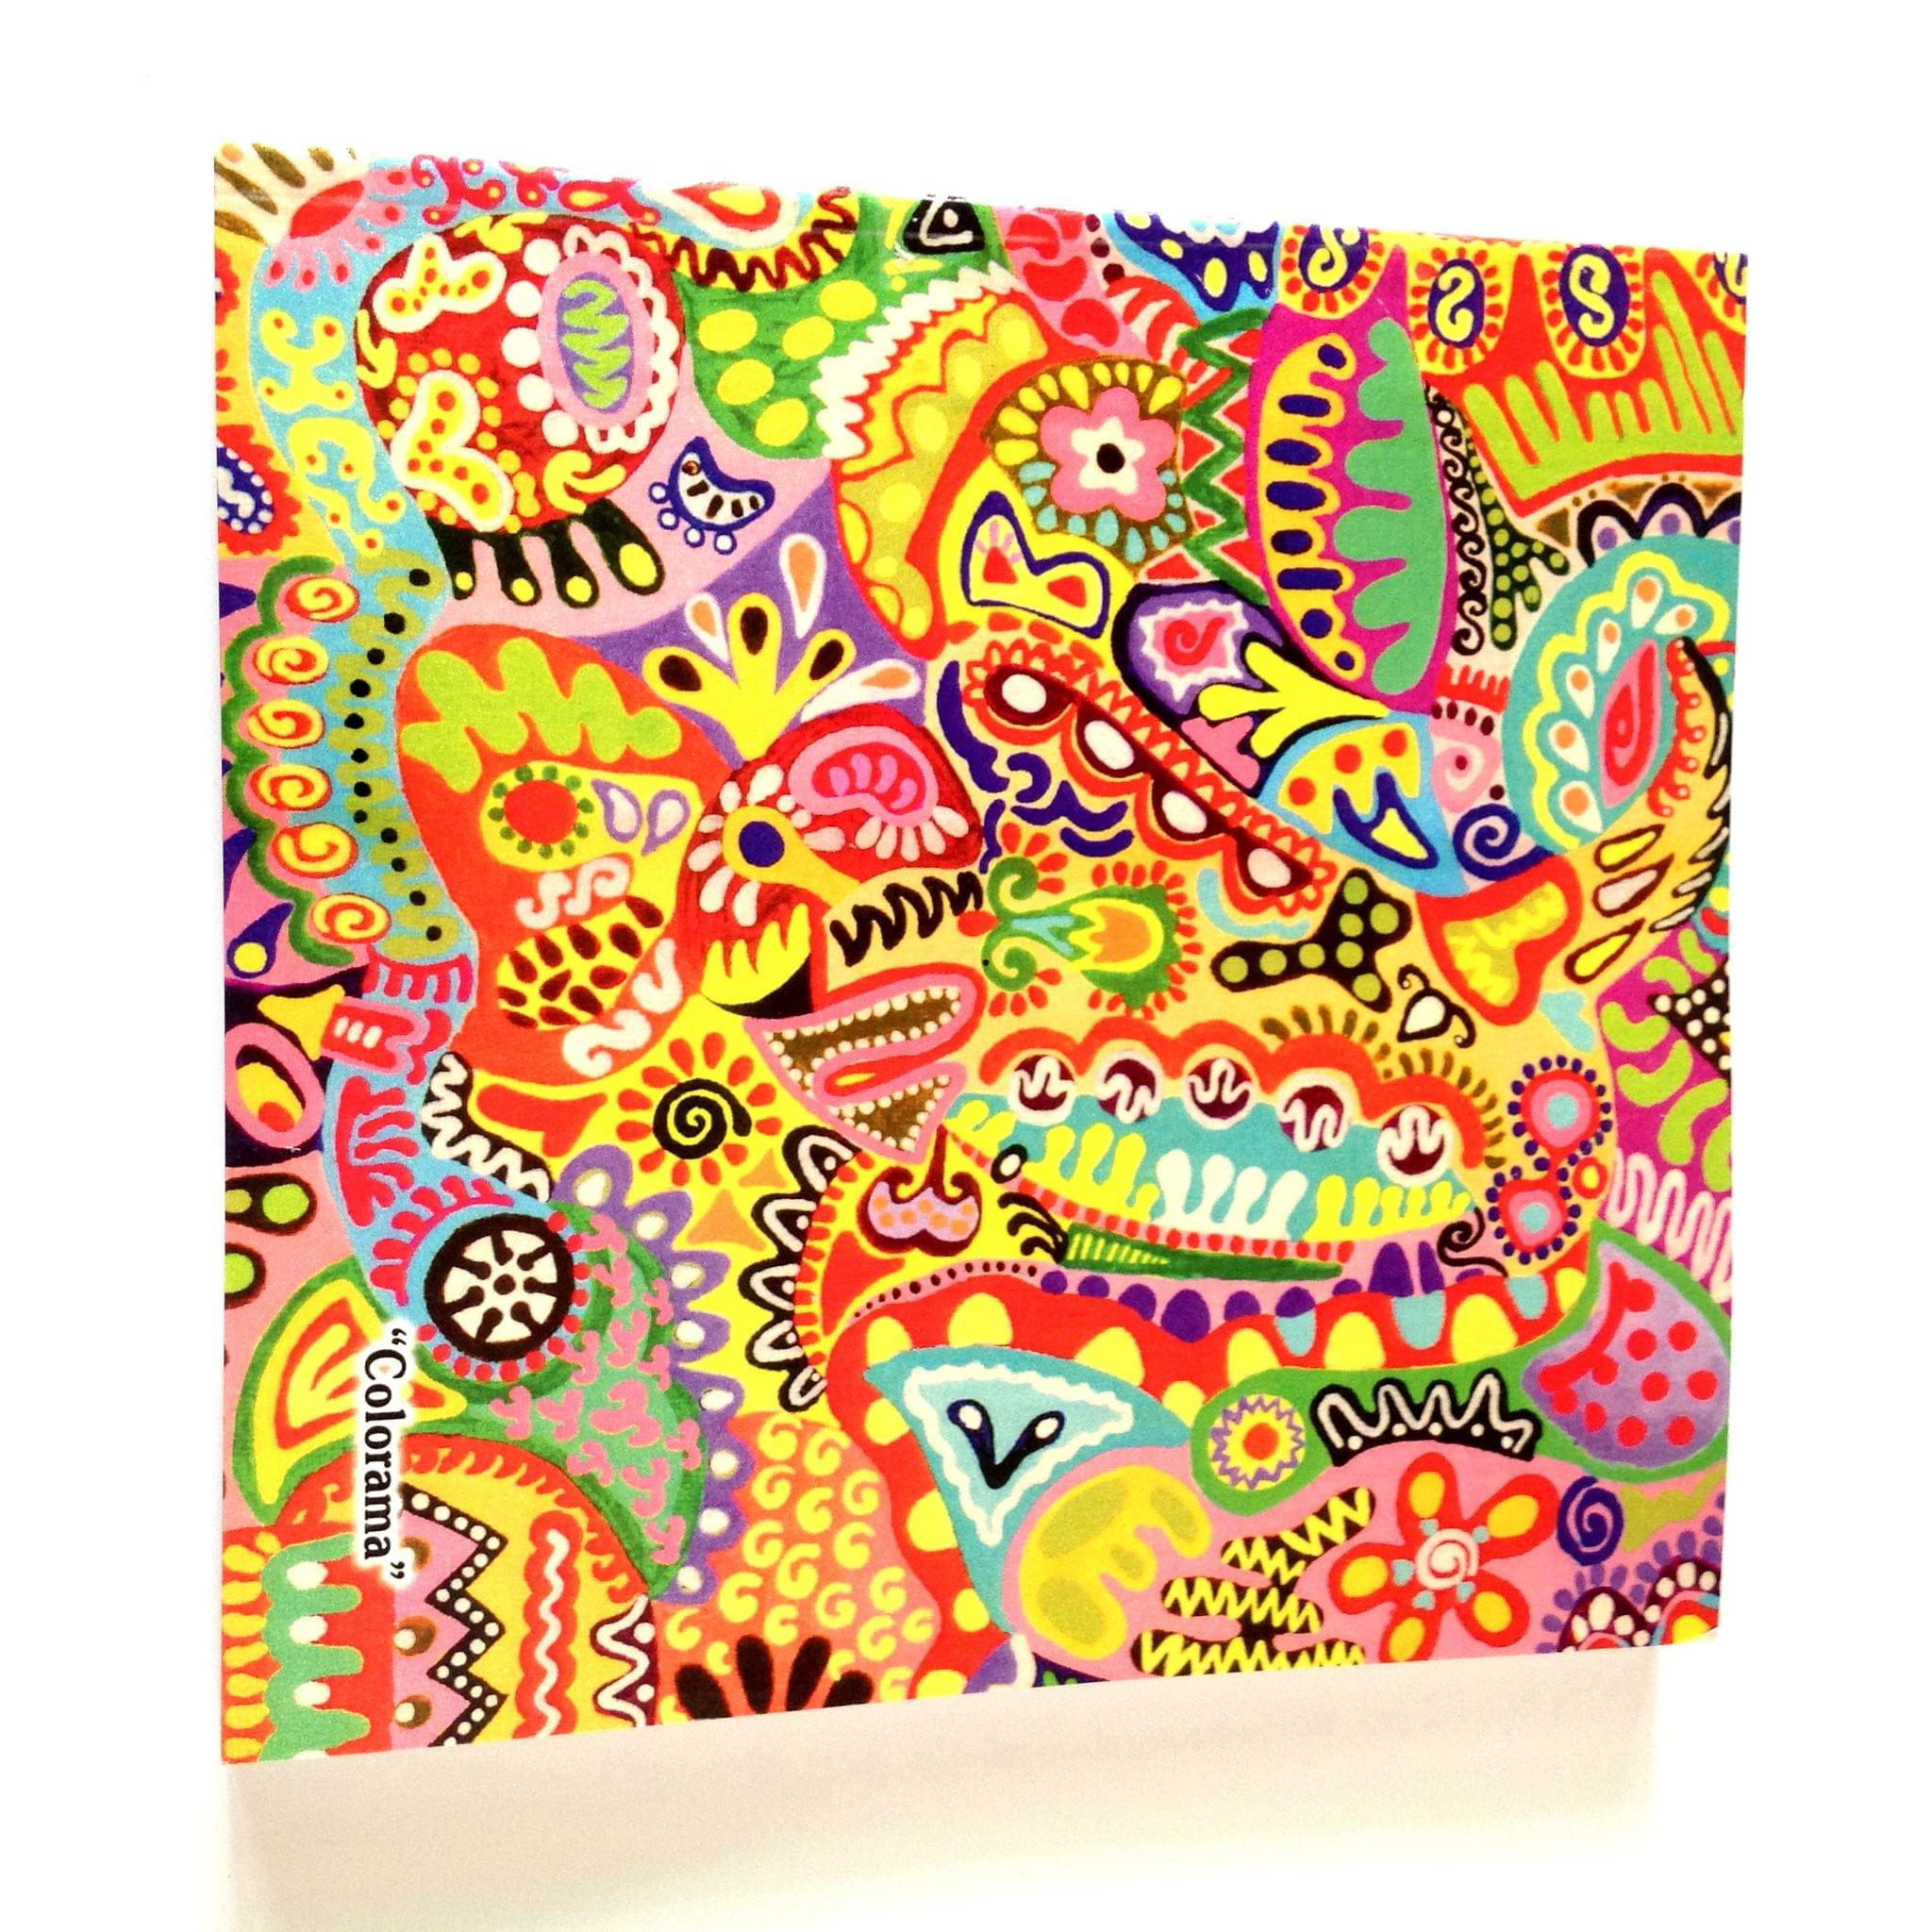 Artwork Notebooks (New!) - Colorama